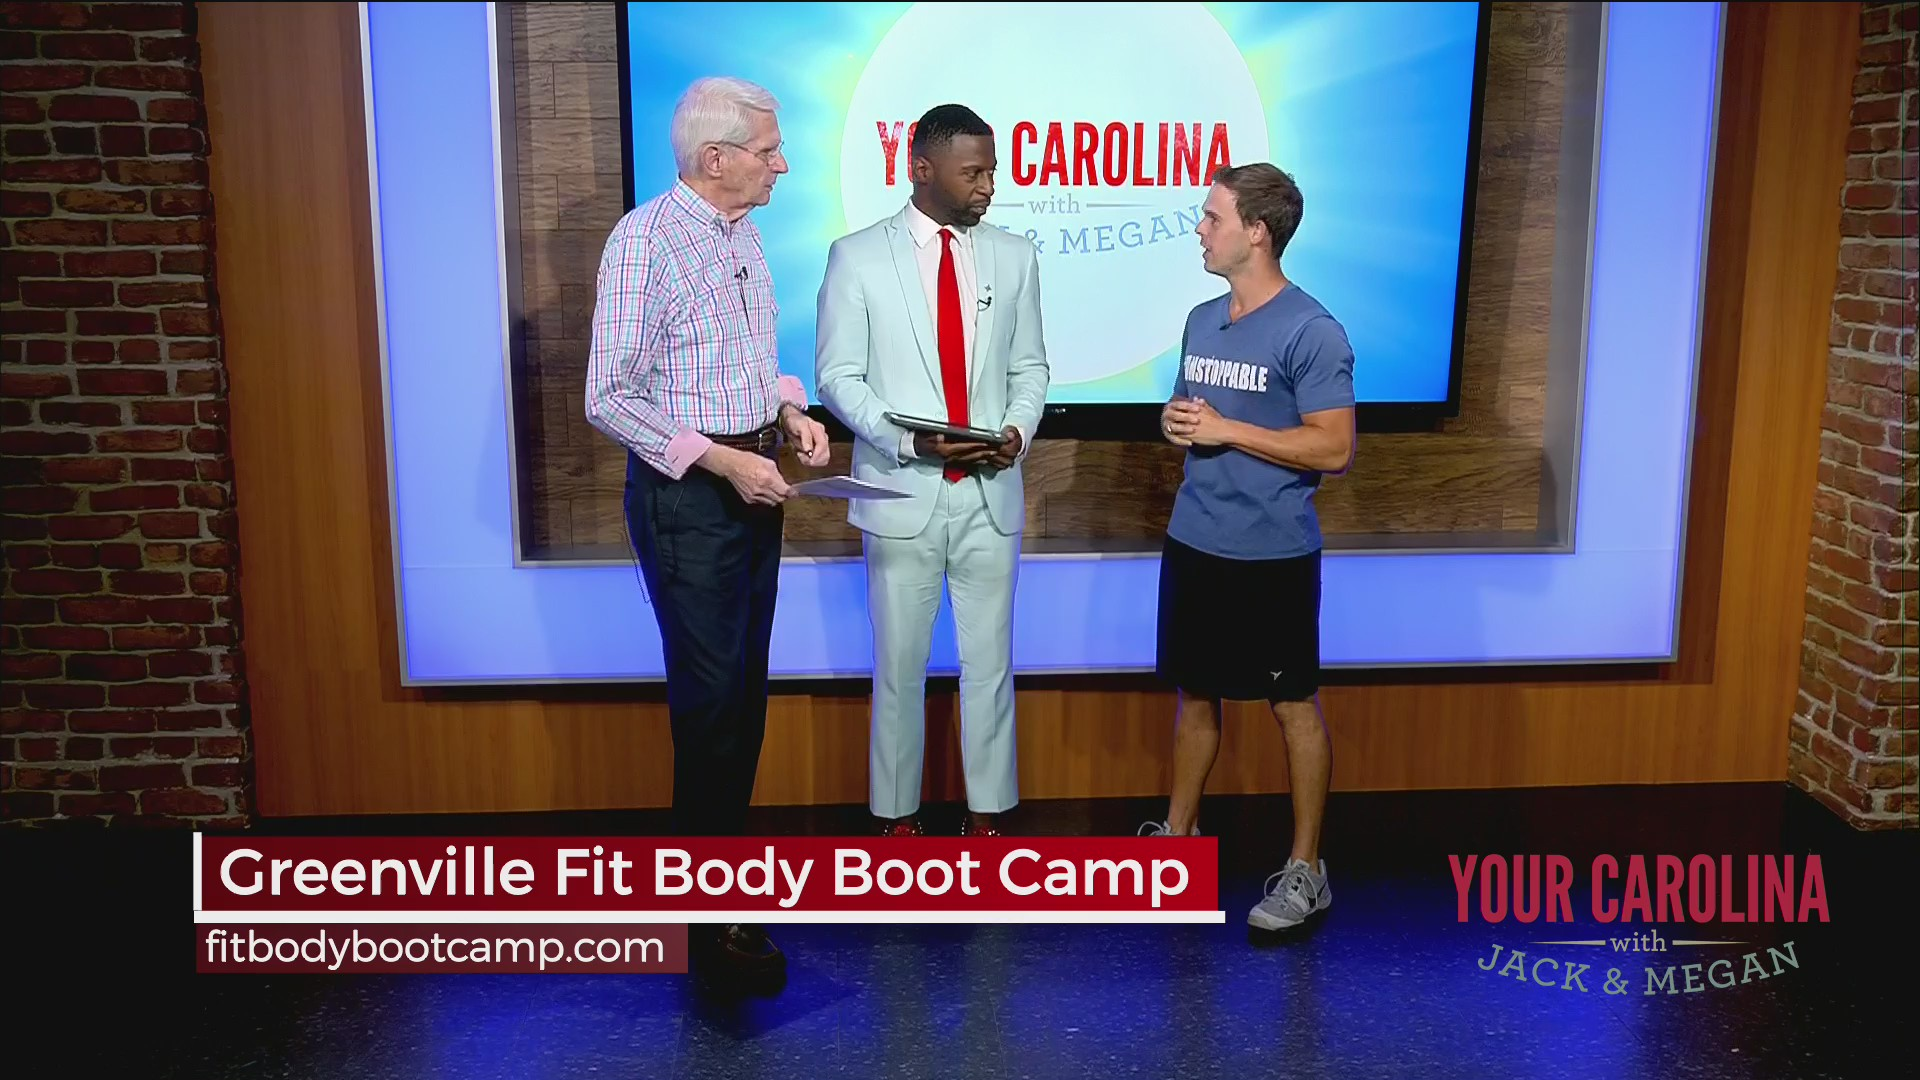 Move It Monday - Greenville Fit Body Boot Camp